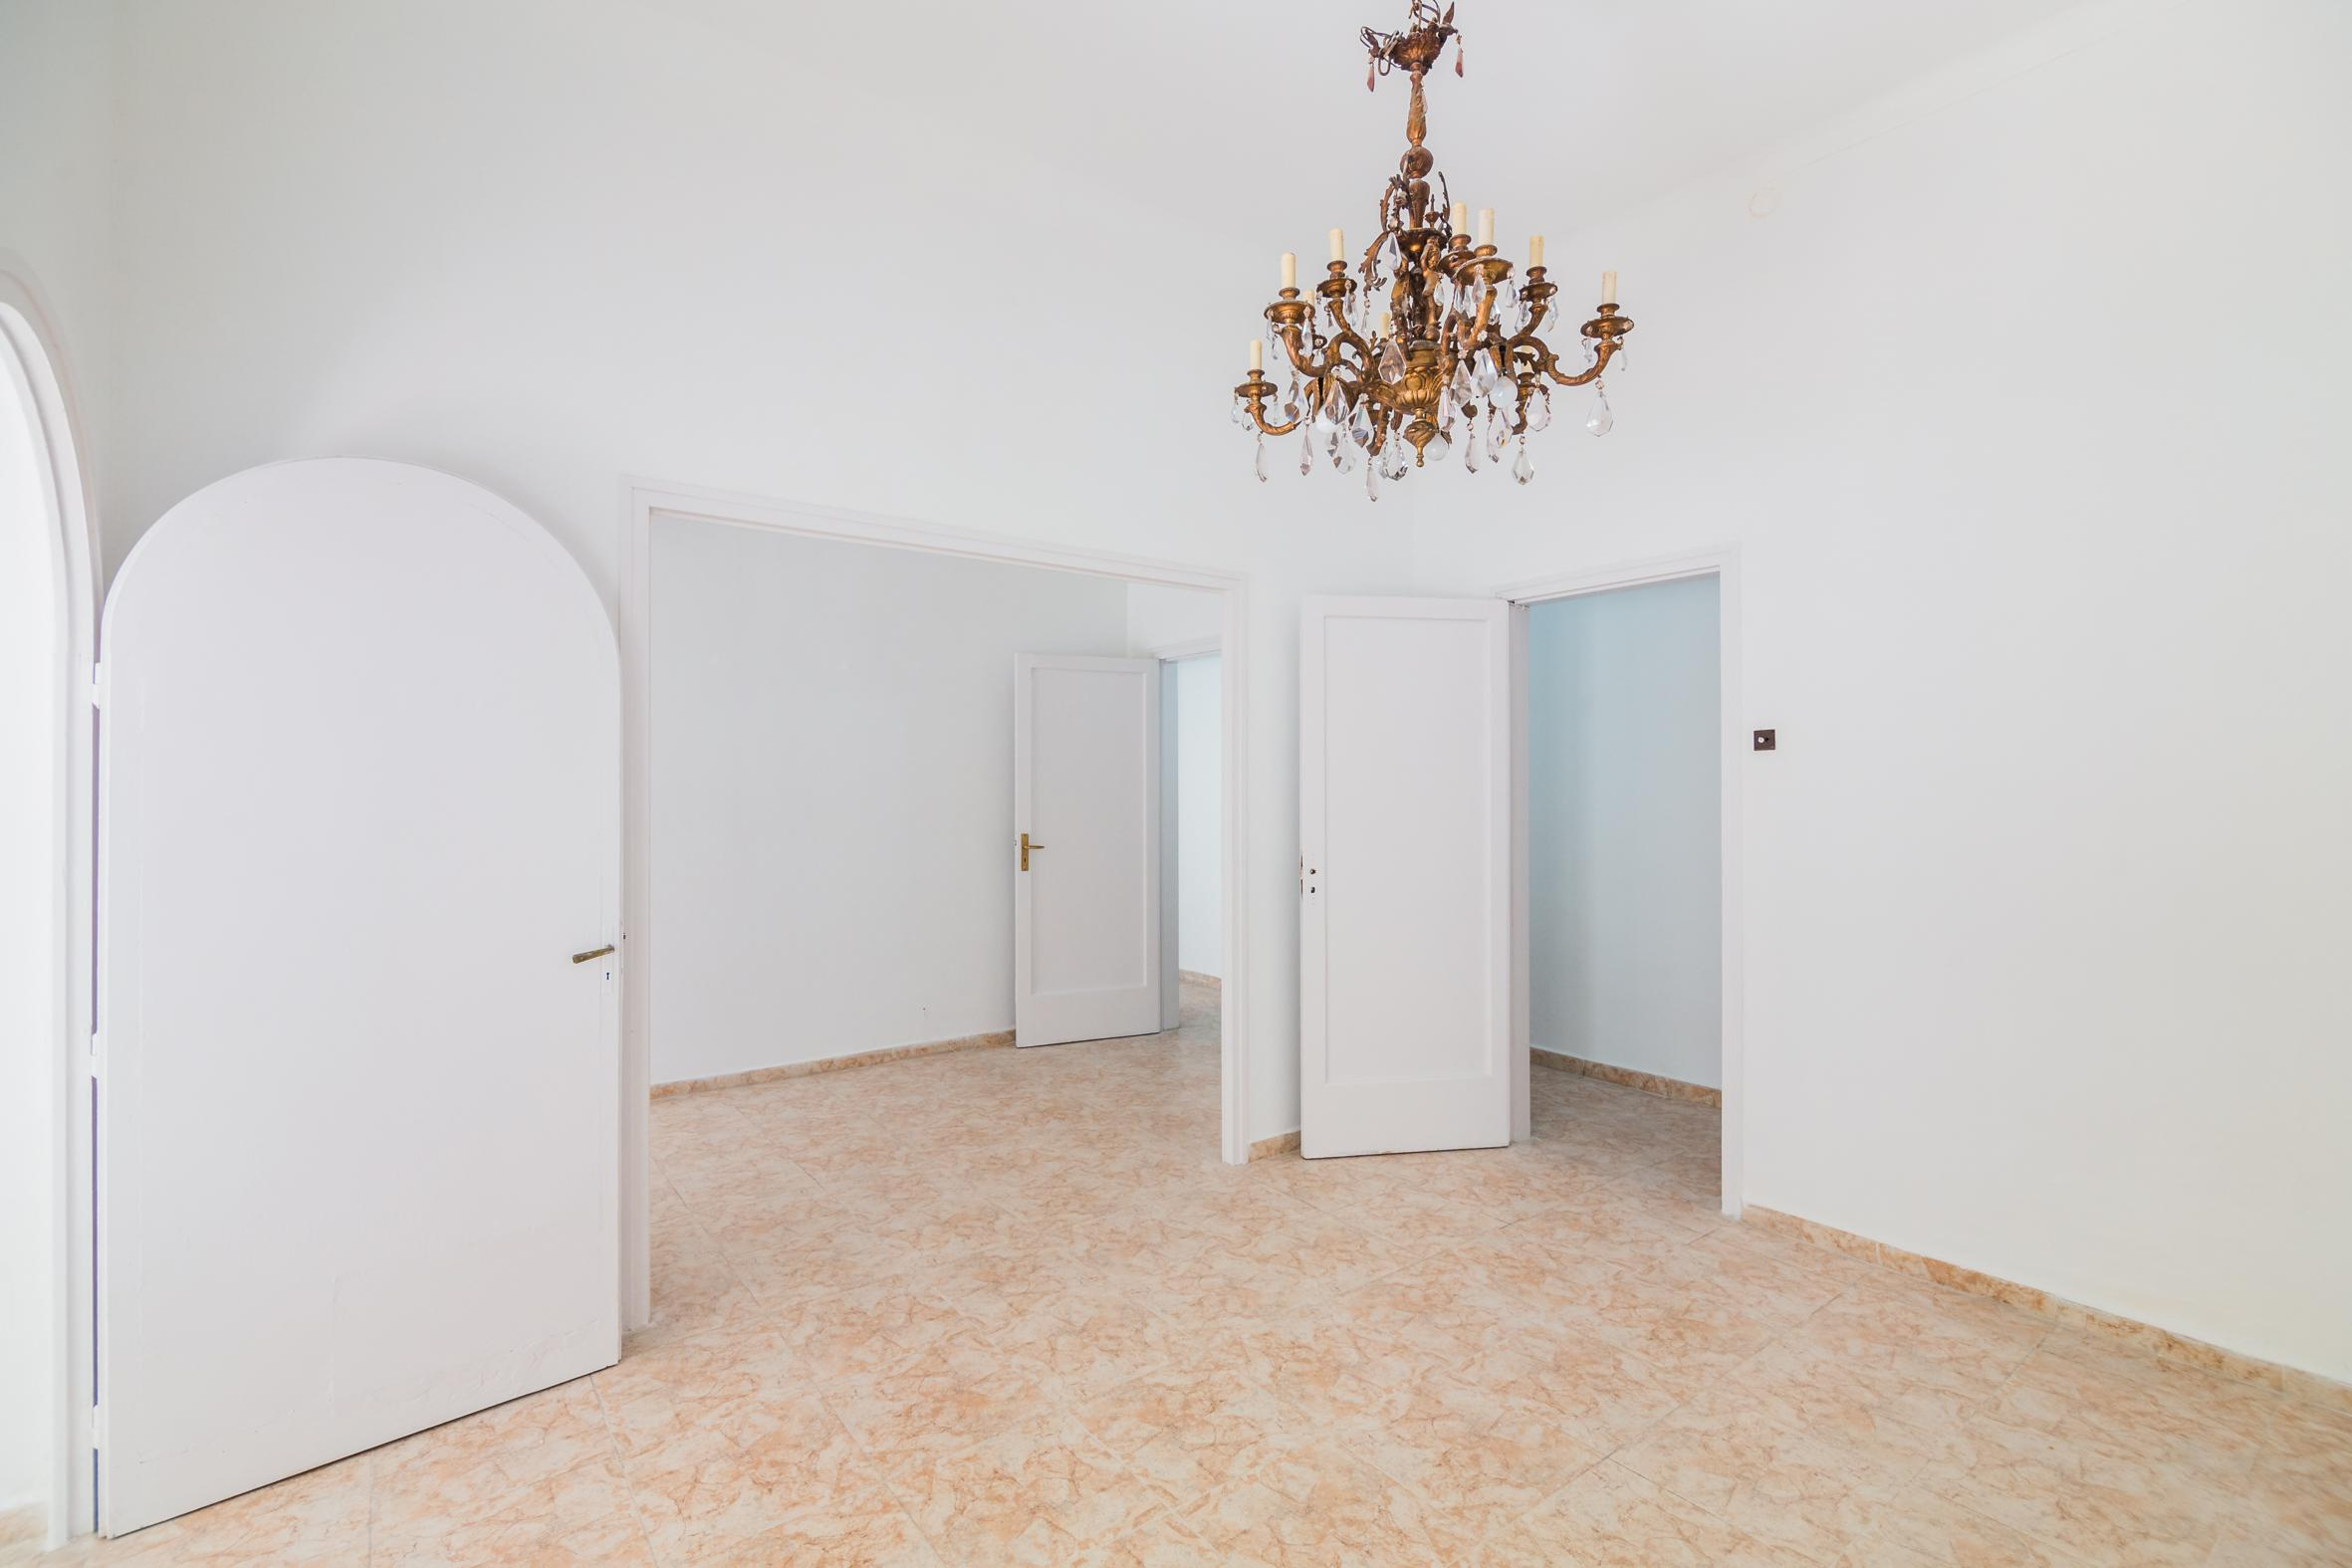 205188 Apartment for sale in Sarrià-Sant Gervasi, St. Gervasi-Bonanova 1